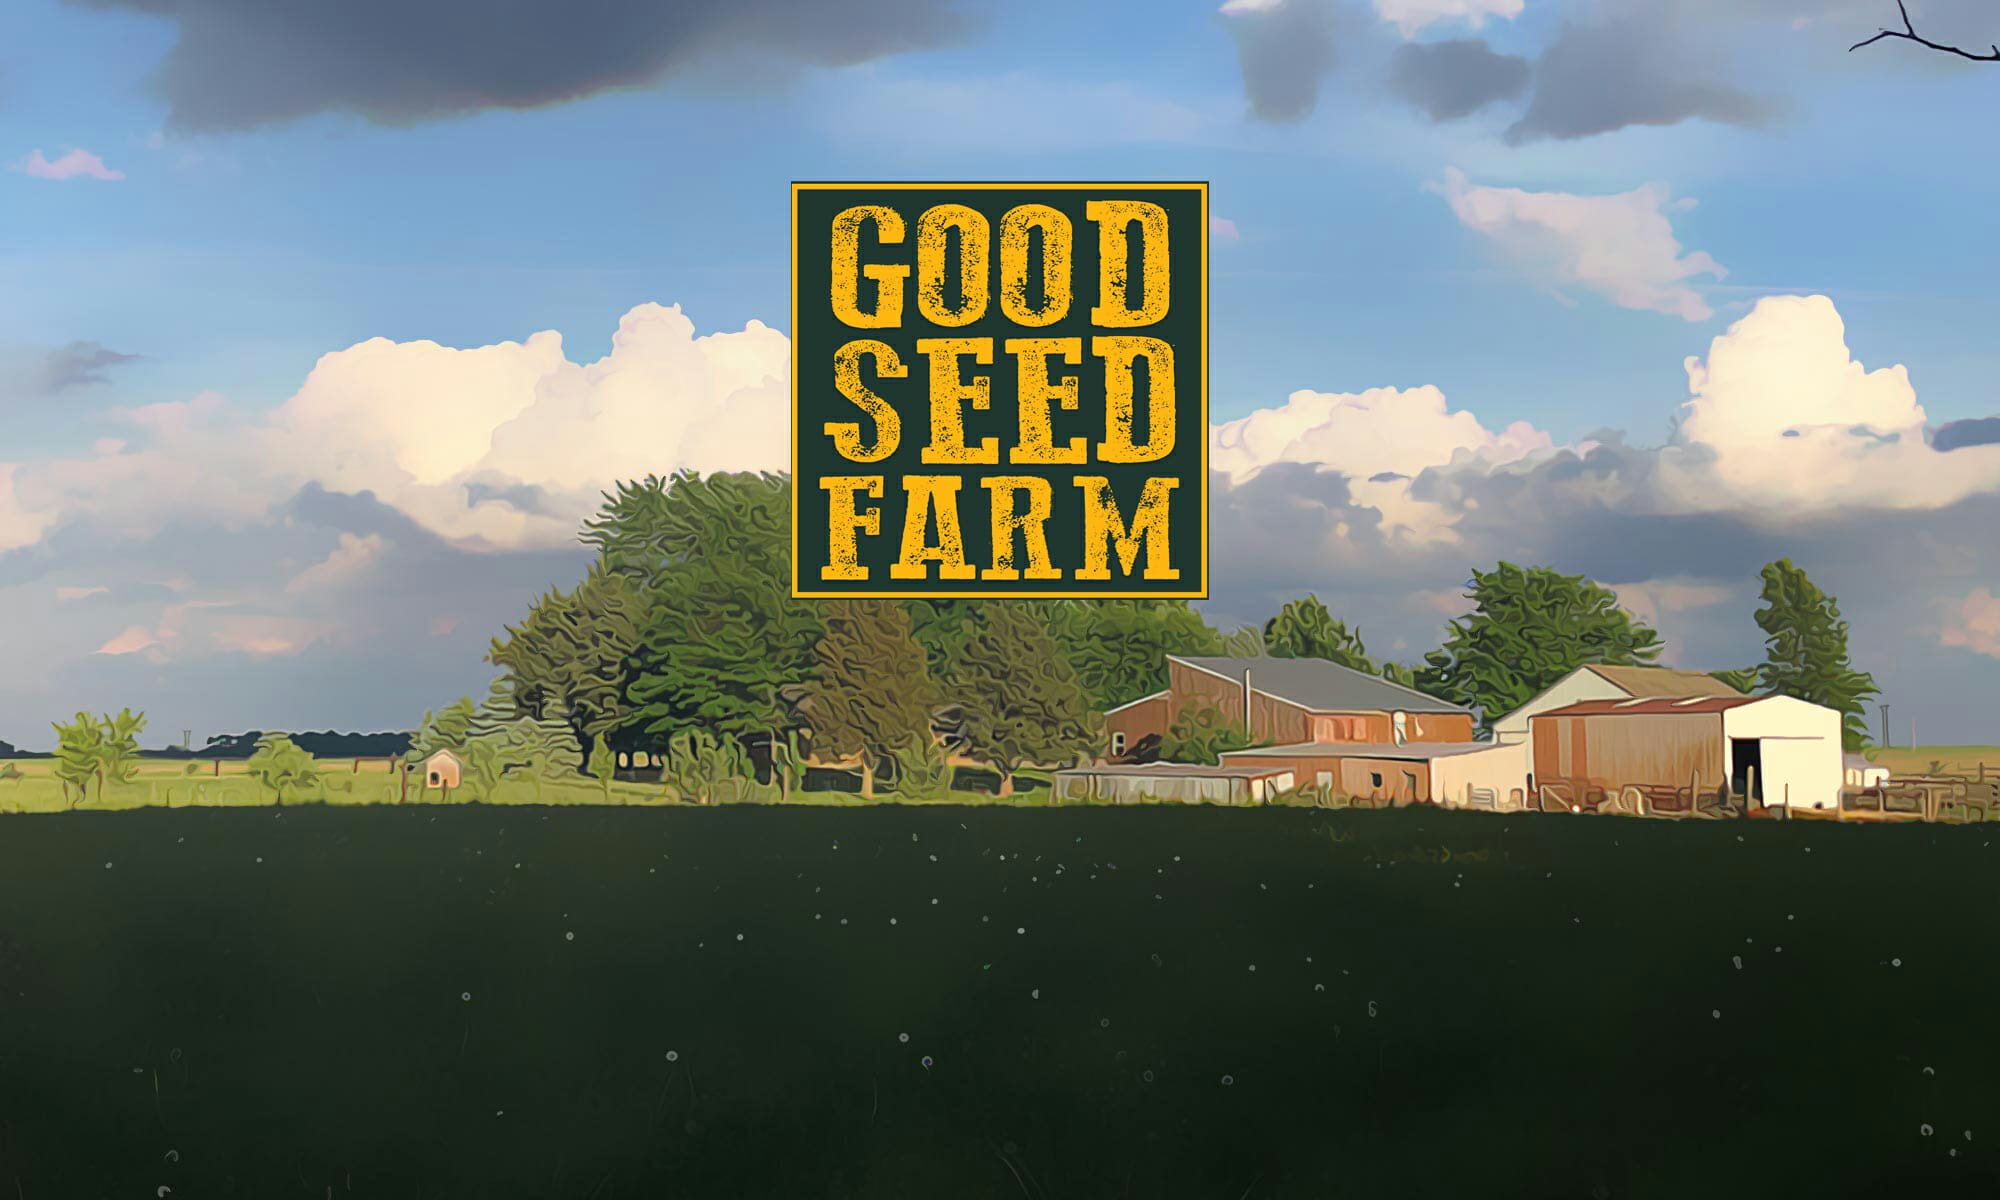 The Good Seed Farm